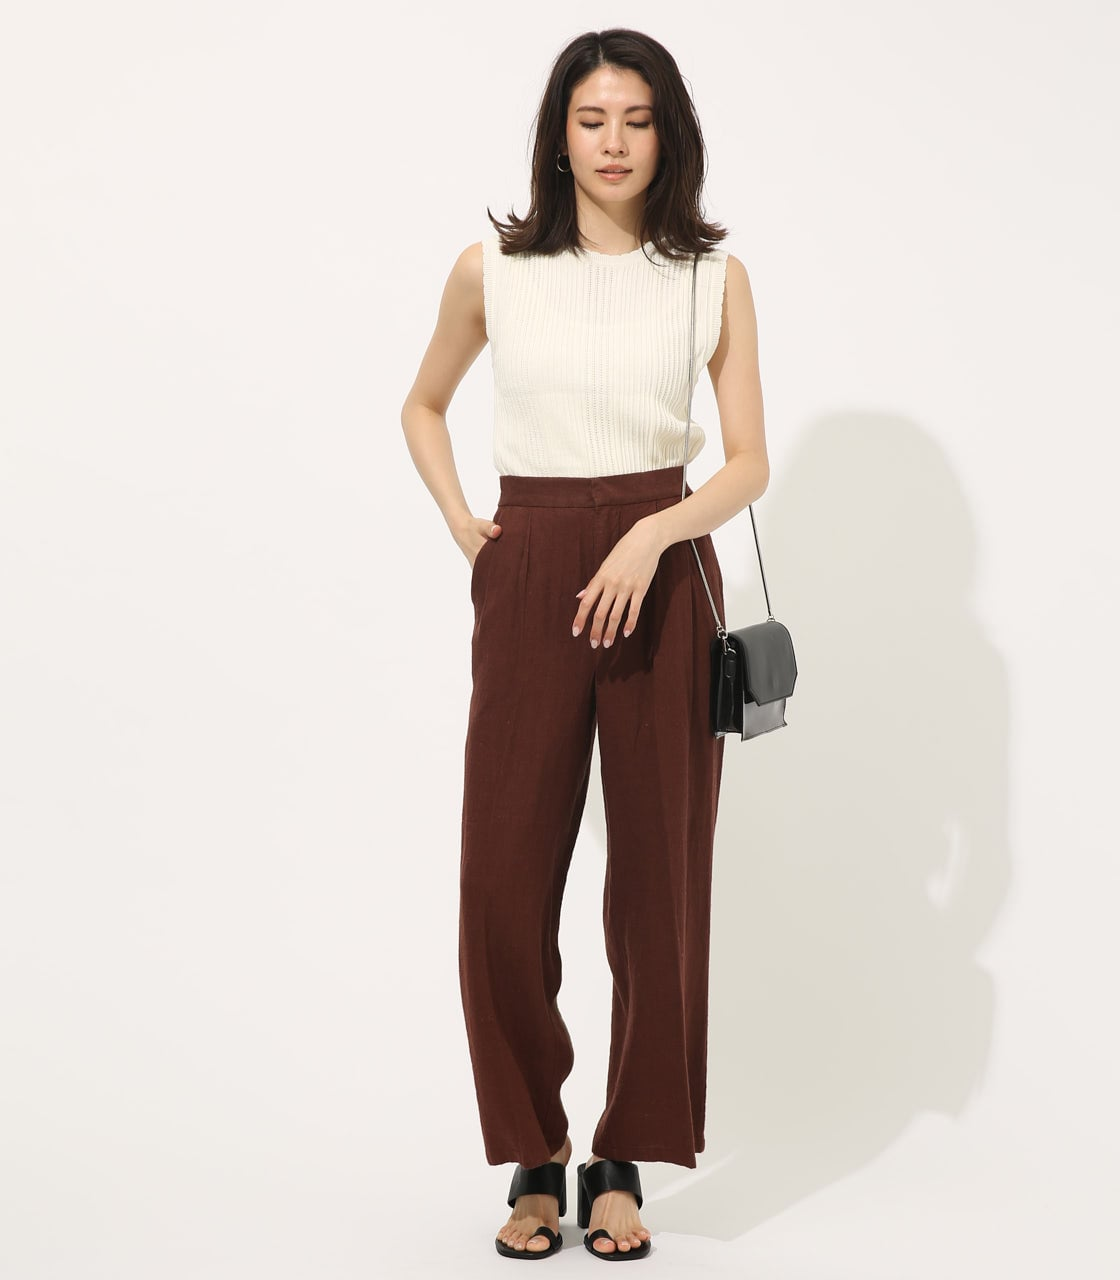 【AZUL BY MOUSSY】COTTON LINEN WIDE PANTS【MOOK50掲載 90131】 詳細画像 BRN 3